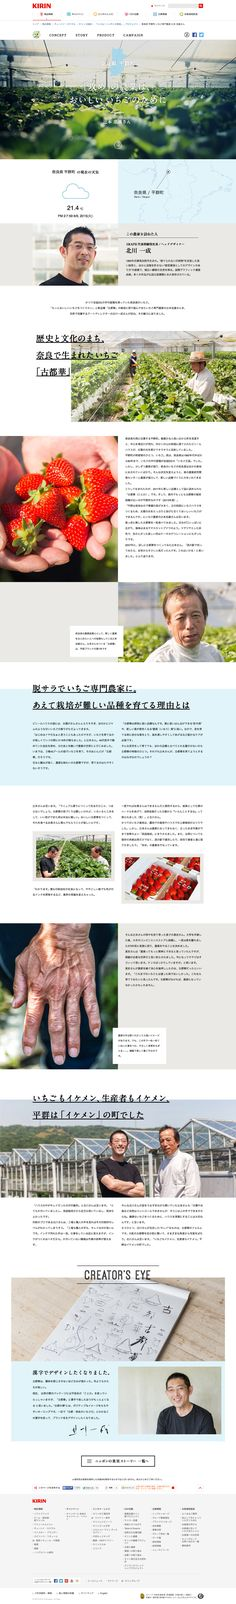 The website:  http://www.kirin.co.jp/products/rtd/hyoketsu/kajitsuproject/story_1.html Site title: 奈良県 平群町 いちご専門農家 辻本 忠雄さん|「いいね!ニッポンの果実。」プロジェクト|キリン 氷結®|キリン